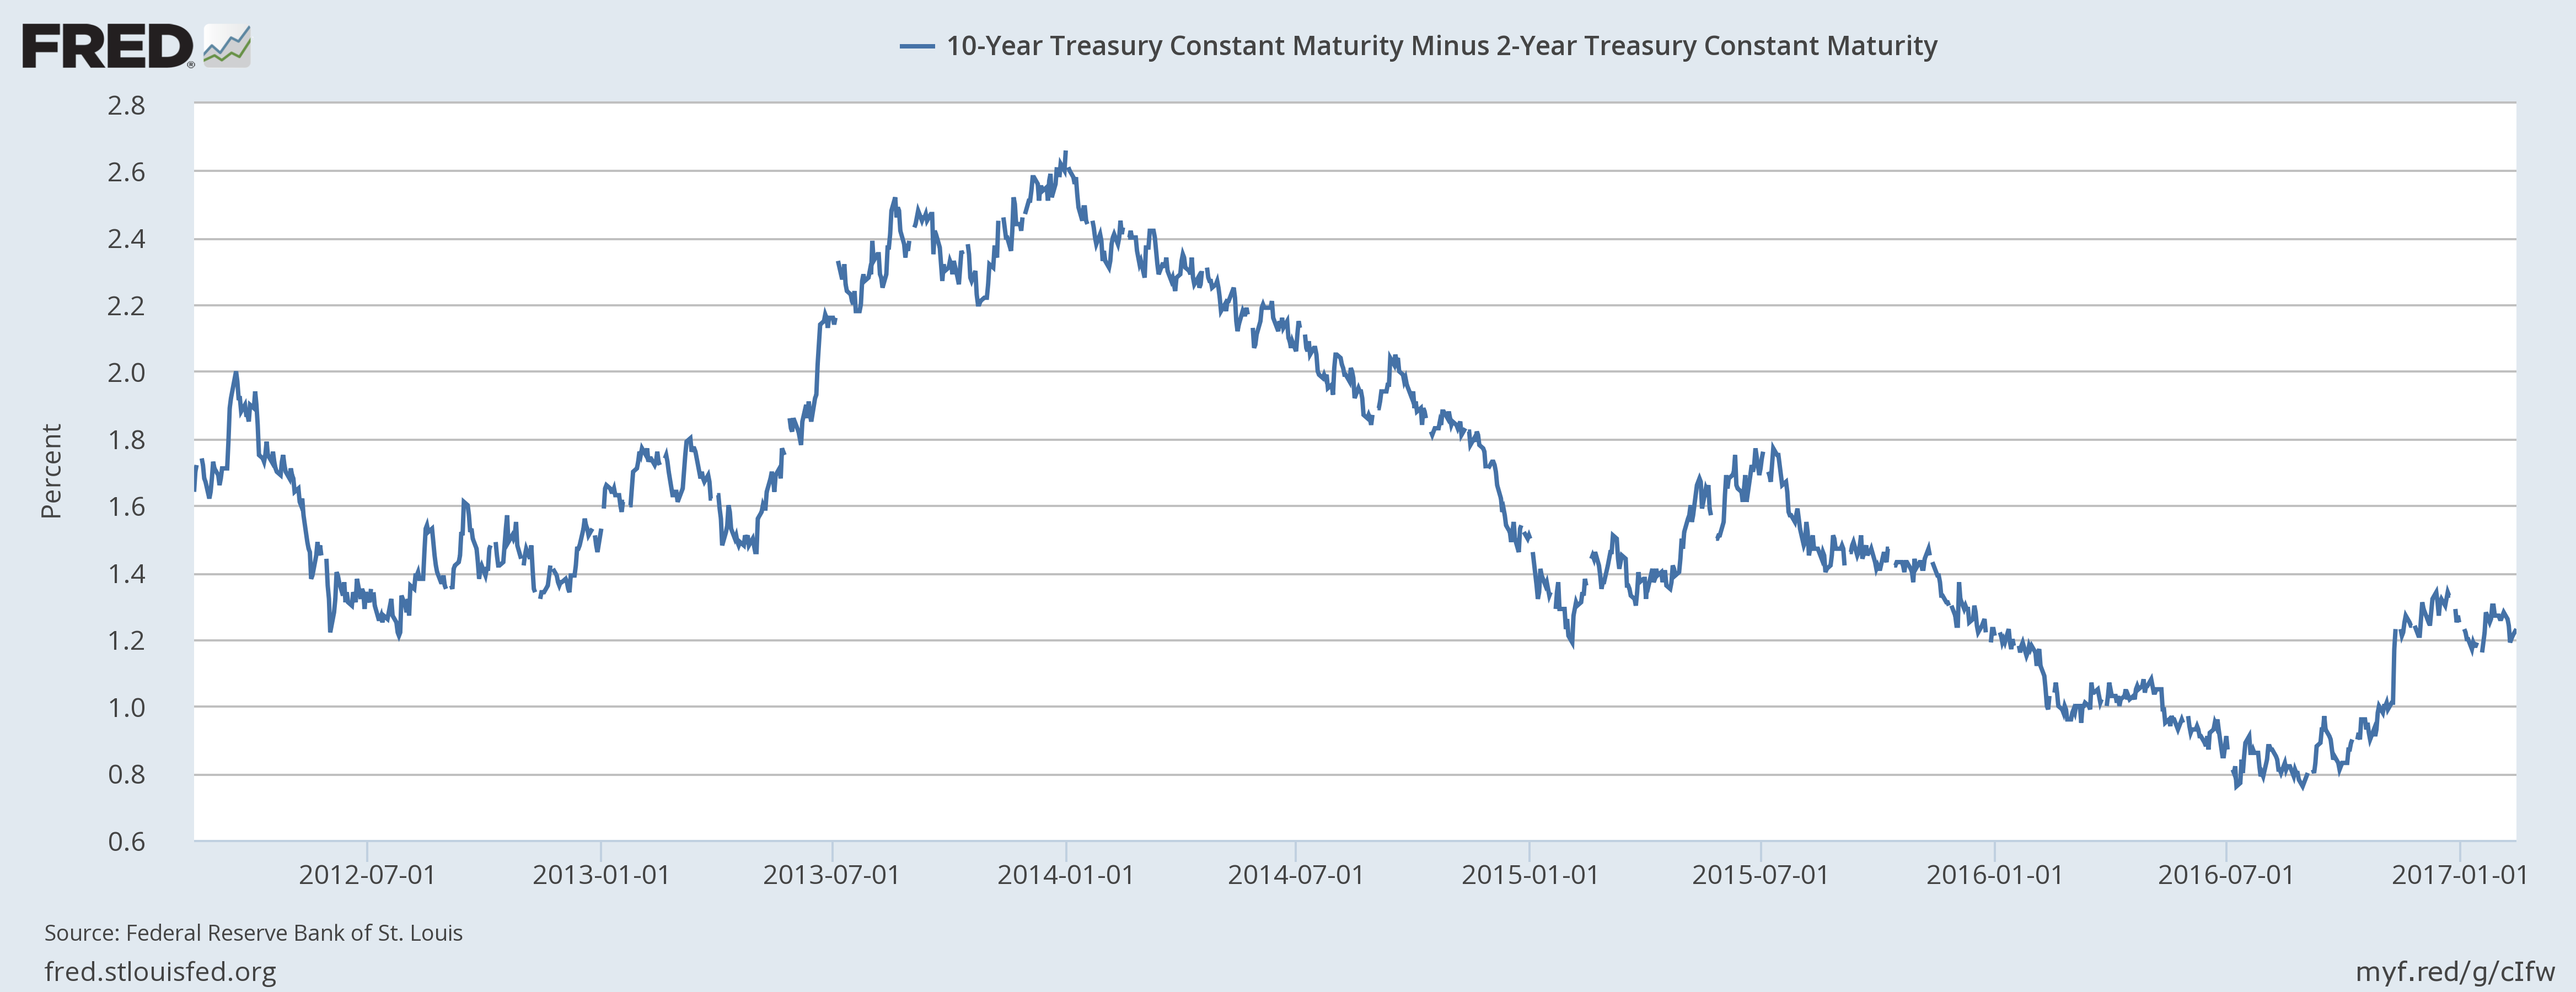 10 Year Treasury Constant Maturity January 2012 - January 2017